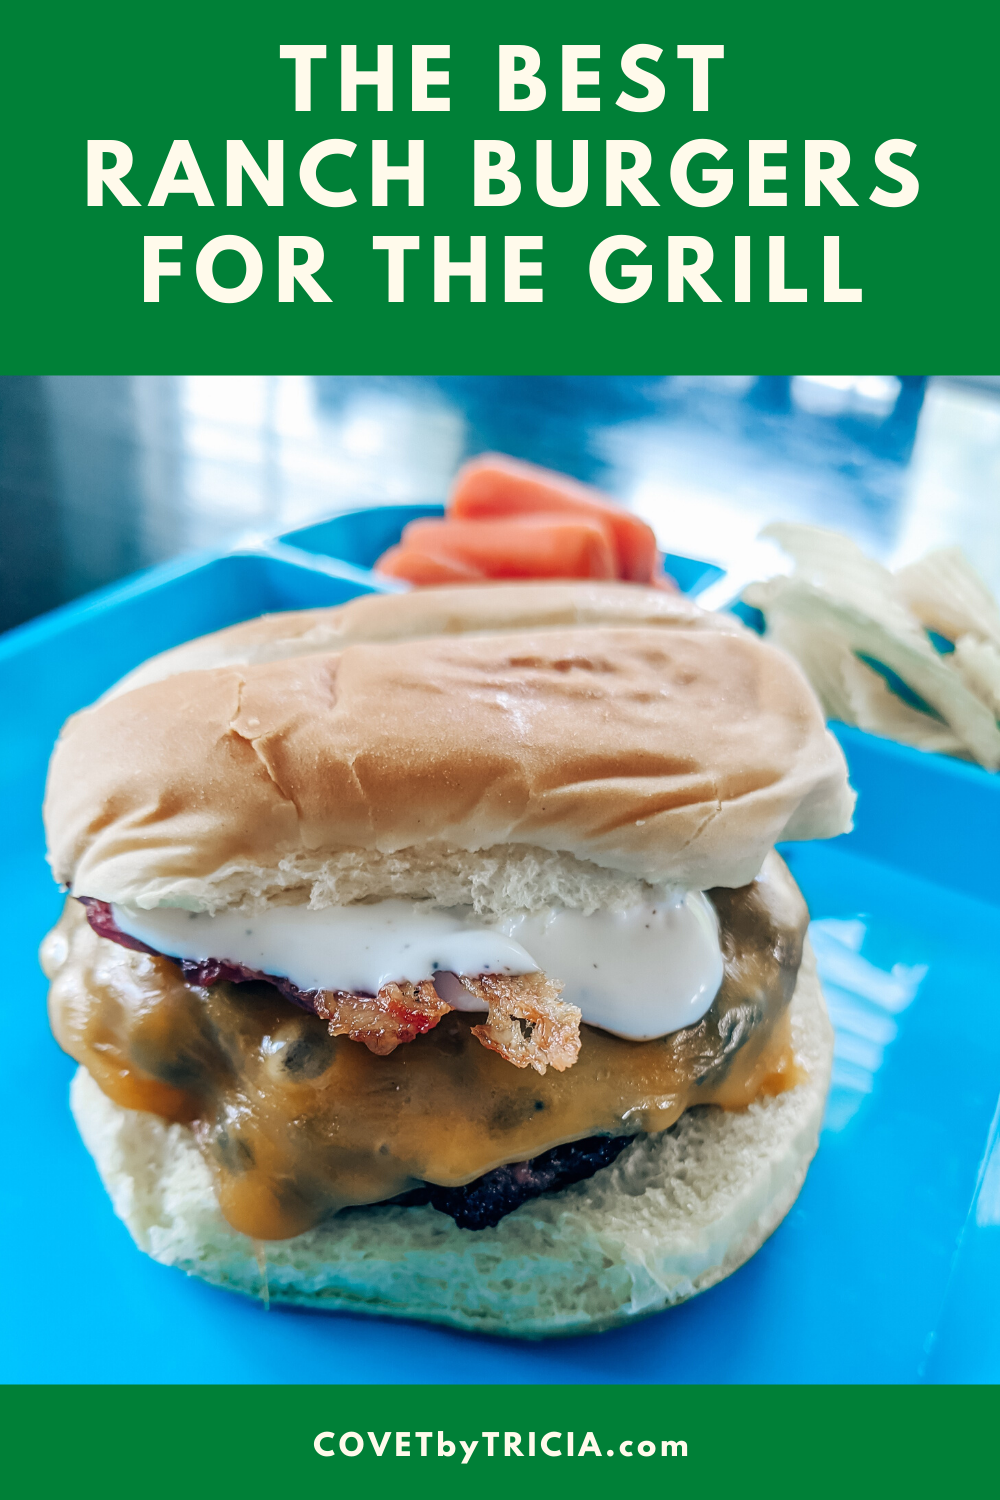 The Best Ranch Burgers for the Grill - Make your next BBQ unforgettable with this easy ranch burger recipe! These bacon ranch burgers are so easy to make and my whole family loved them! #ranch #burgers #bbq #grill